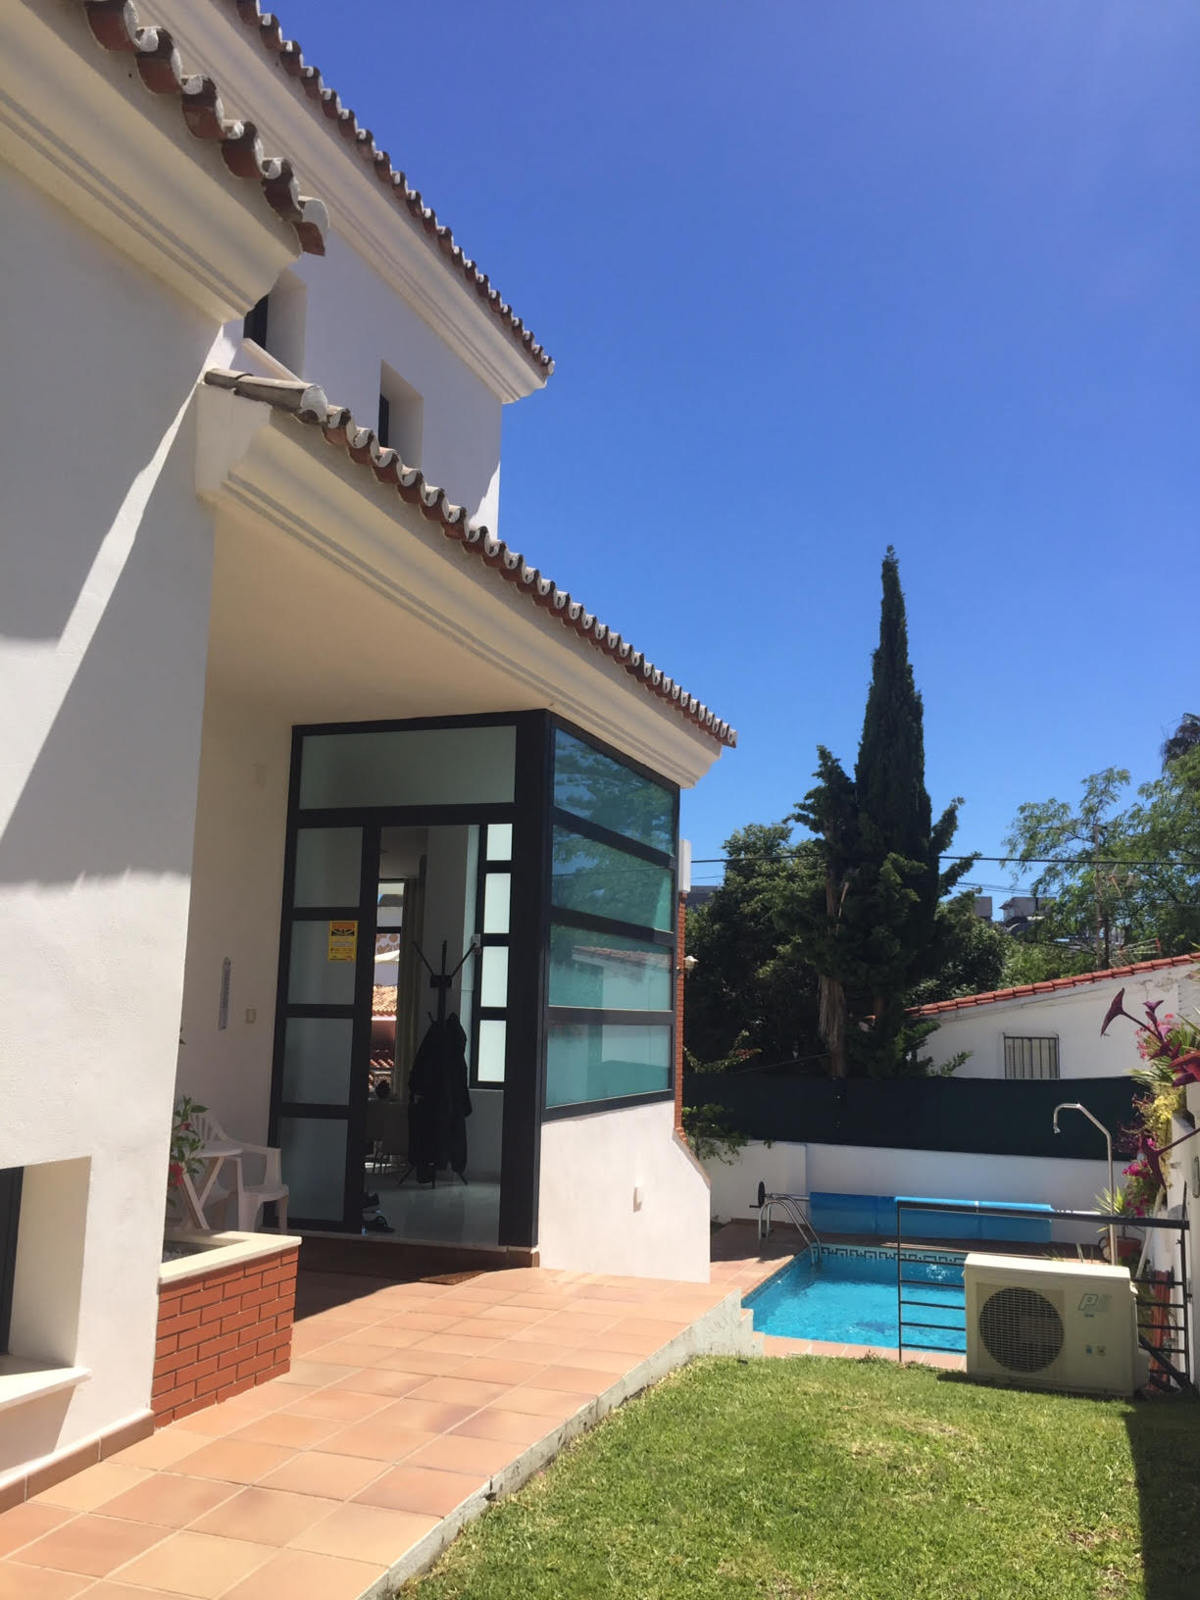 LOCATION, LOCATION, LOCATION, This contemporary 4 bed 3 bath villa is in a sought after location in ,Spain